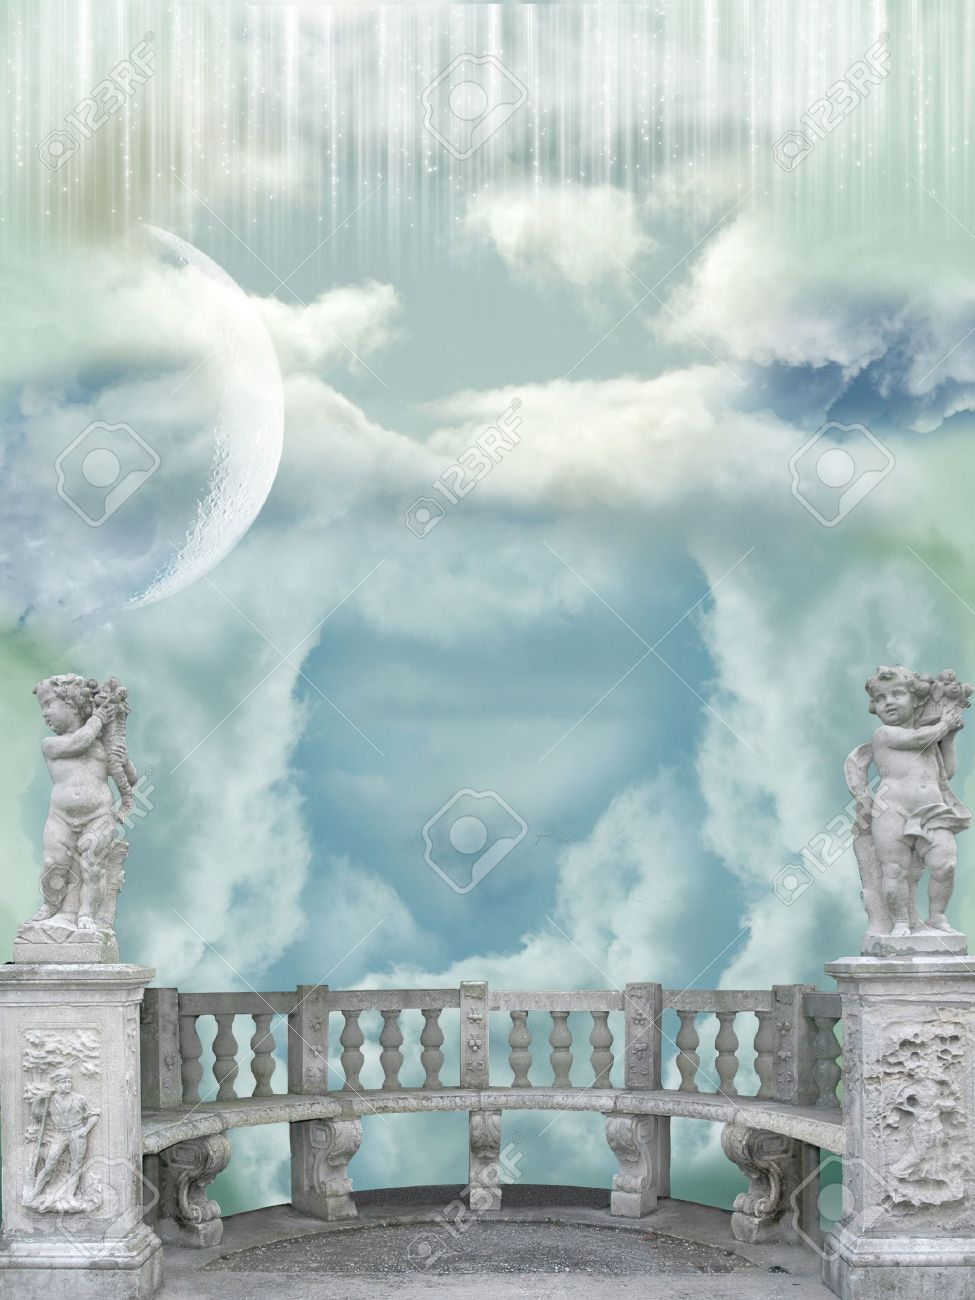 Balcony in the sky with angel statues Stock Photo - 14548250